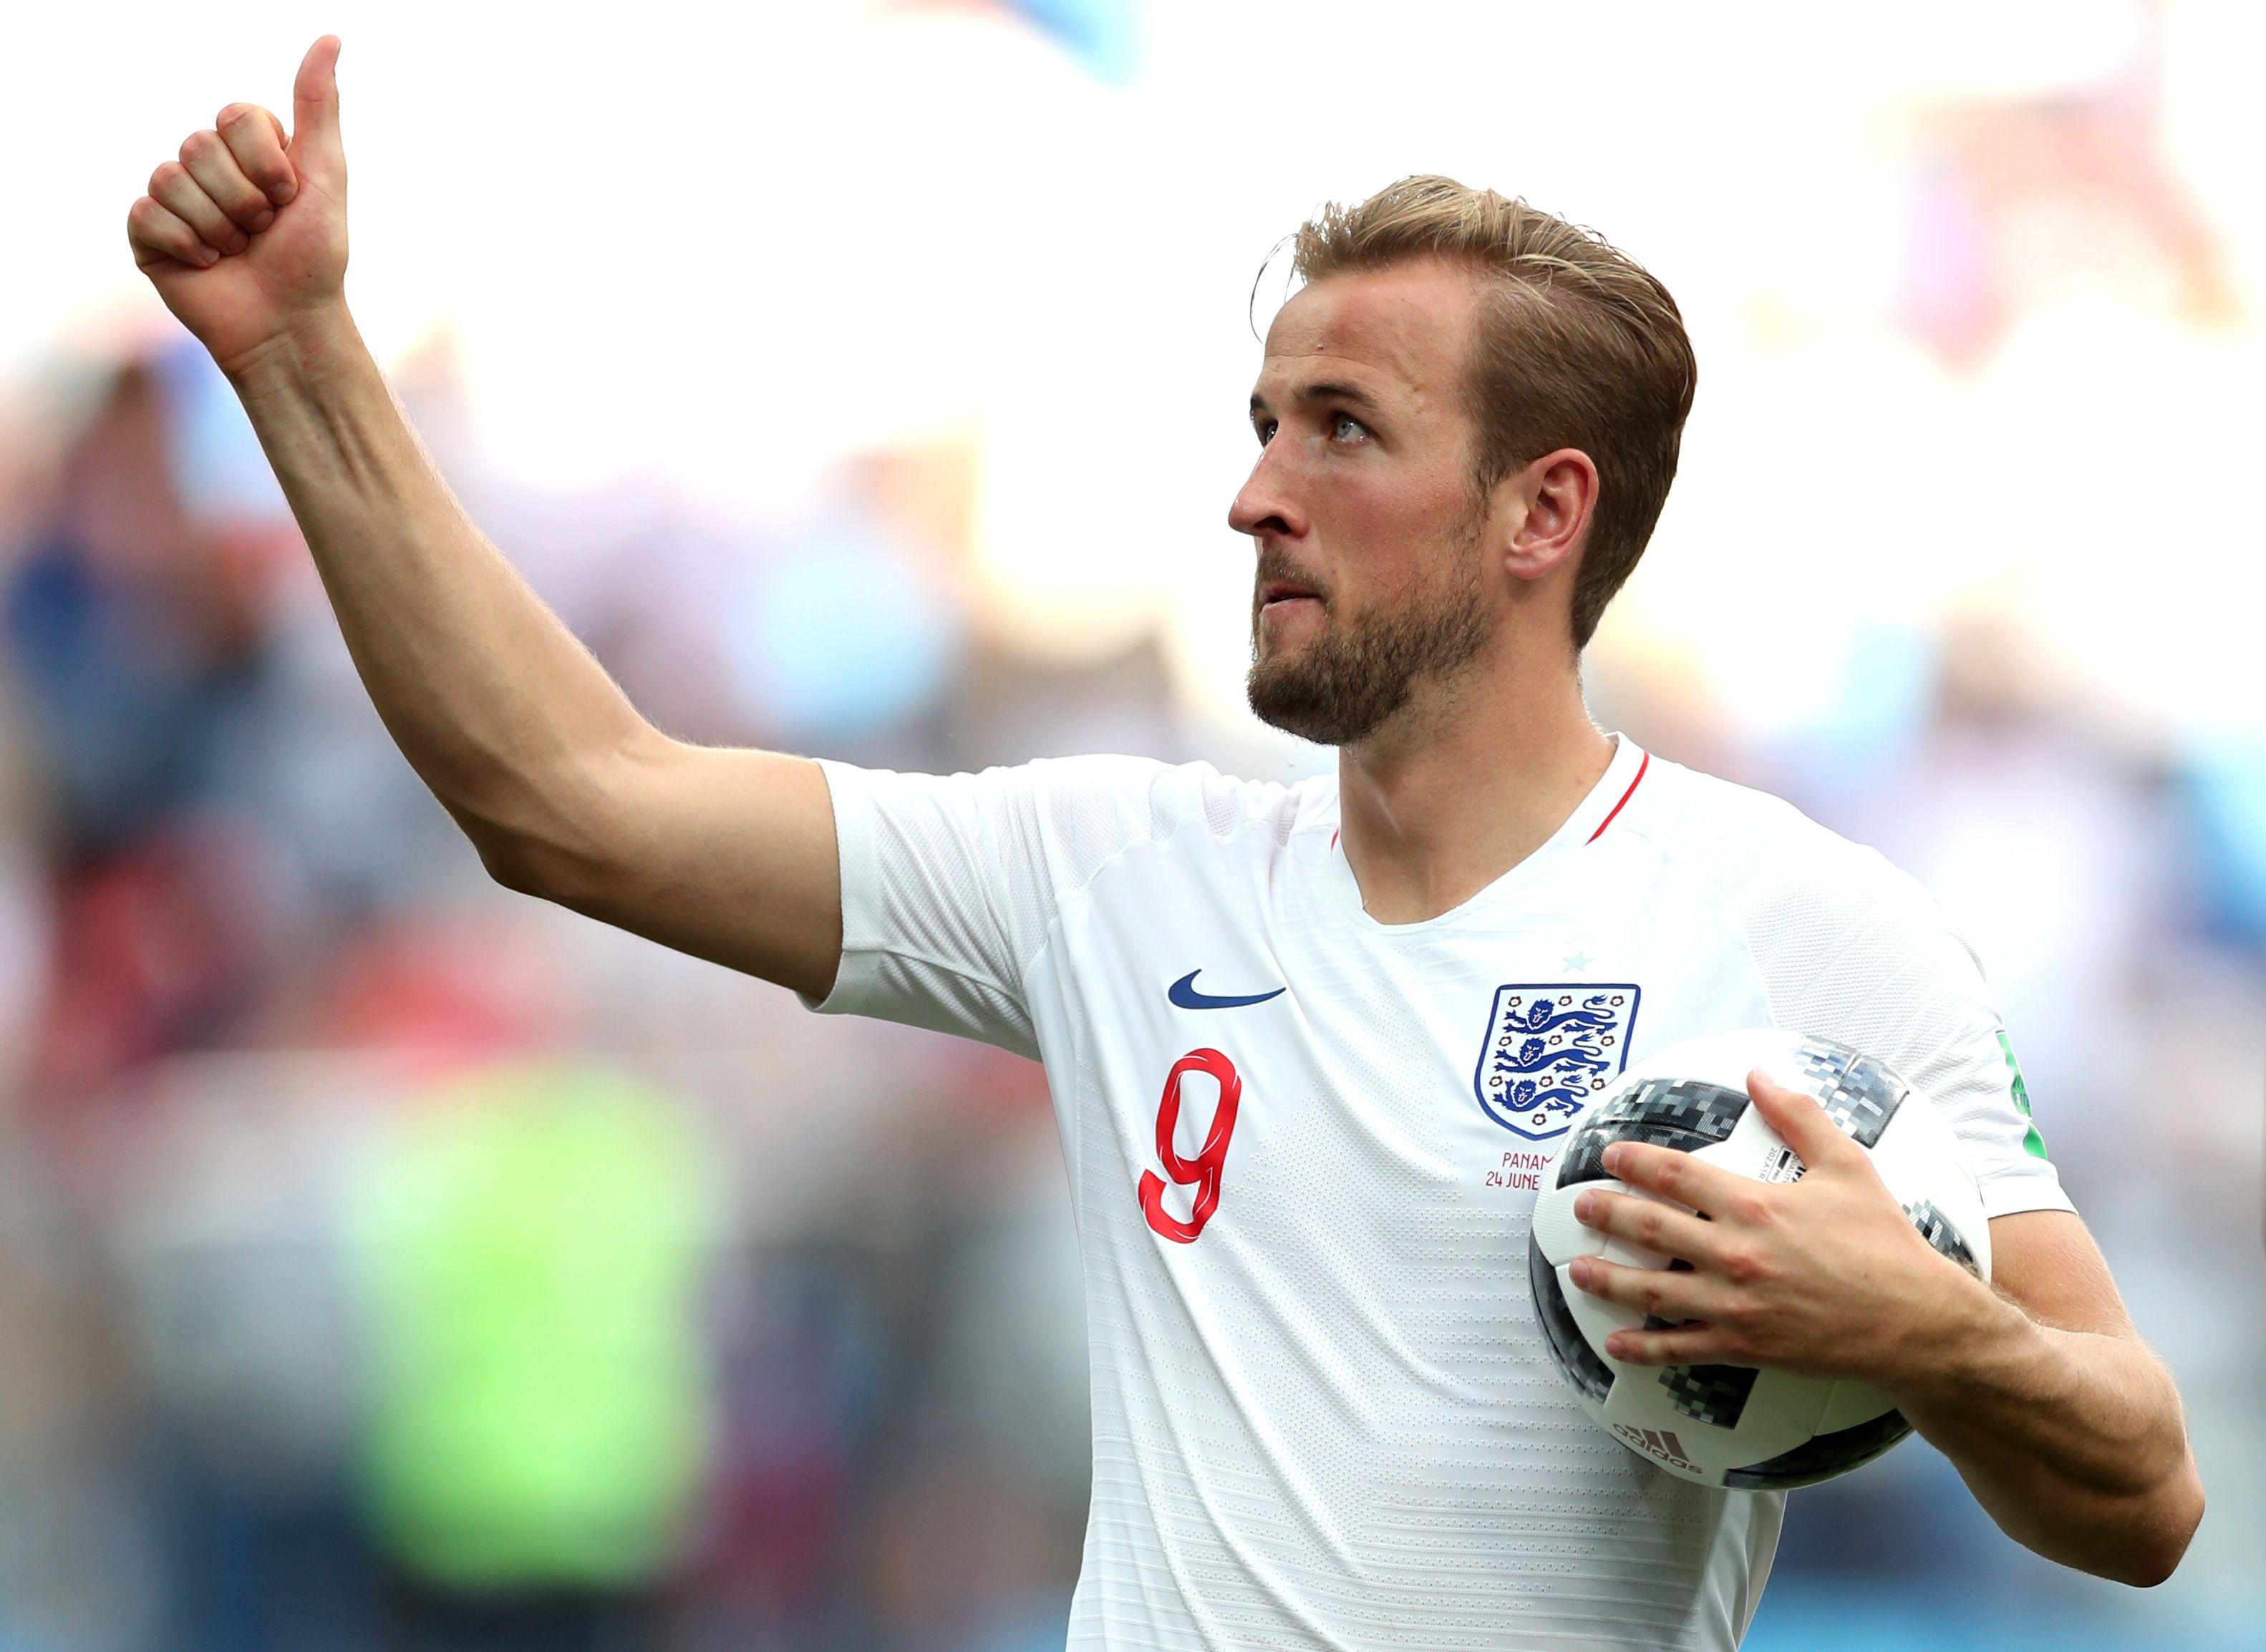 Soccer World Cup 2018 Waistcoats Hashtags And Atomic Kitten England Boss Gareth Southgate Wary Of Hero Worship He Is Earning Prai Harry Kane